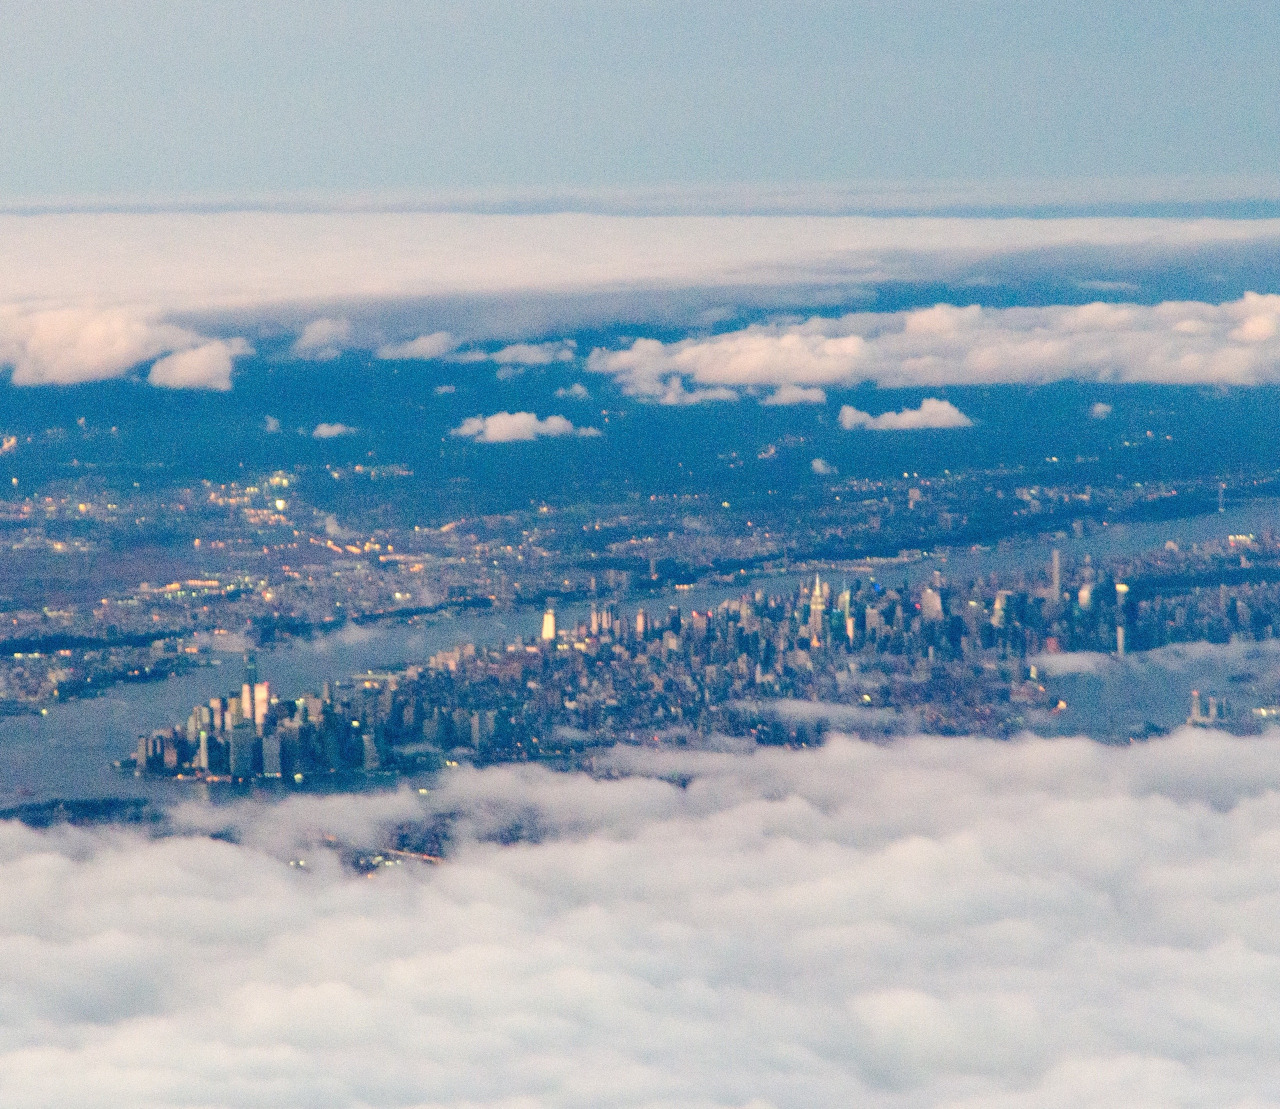 Manhattan from the skies.